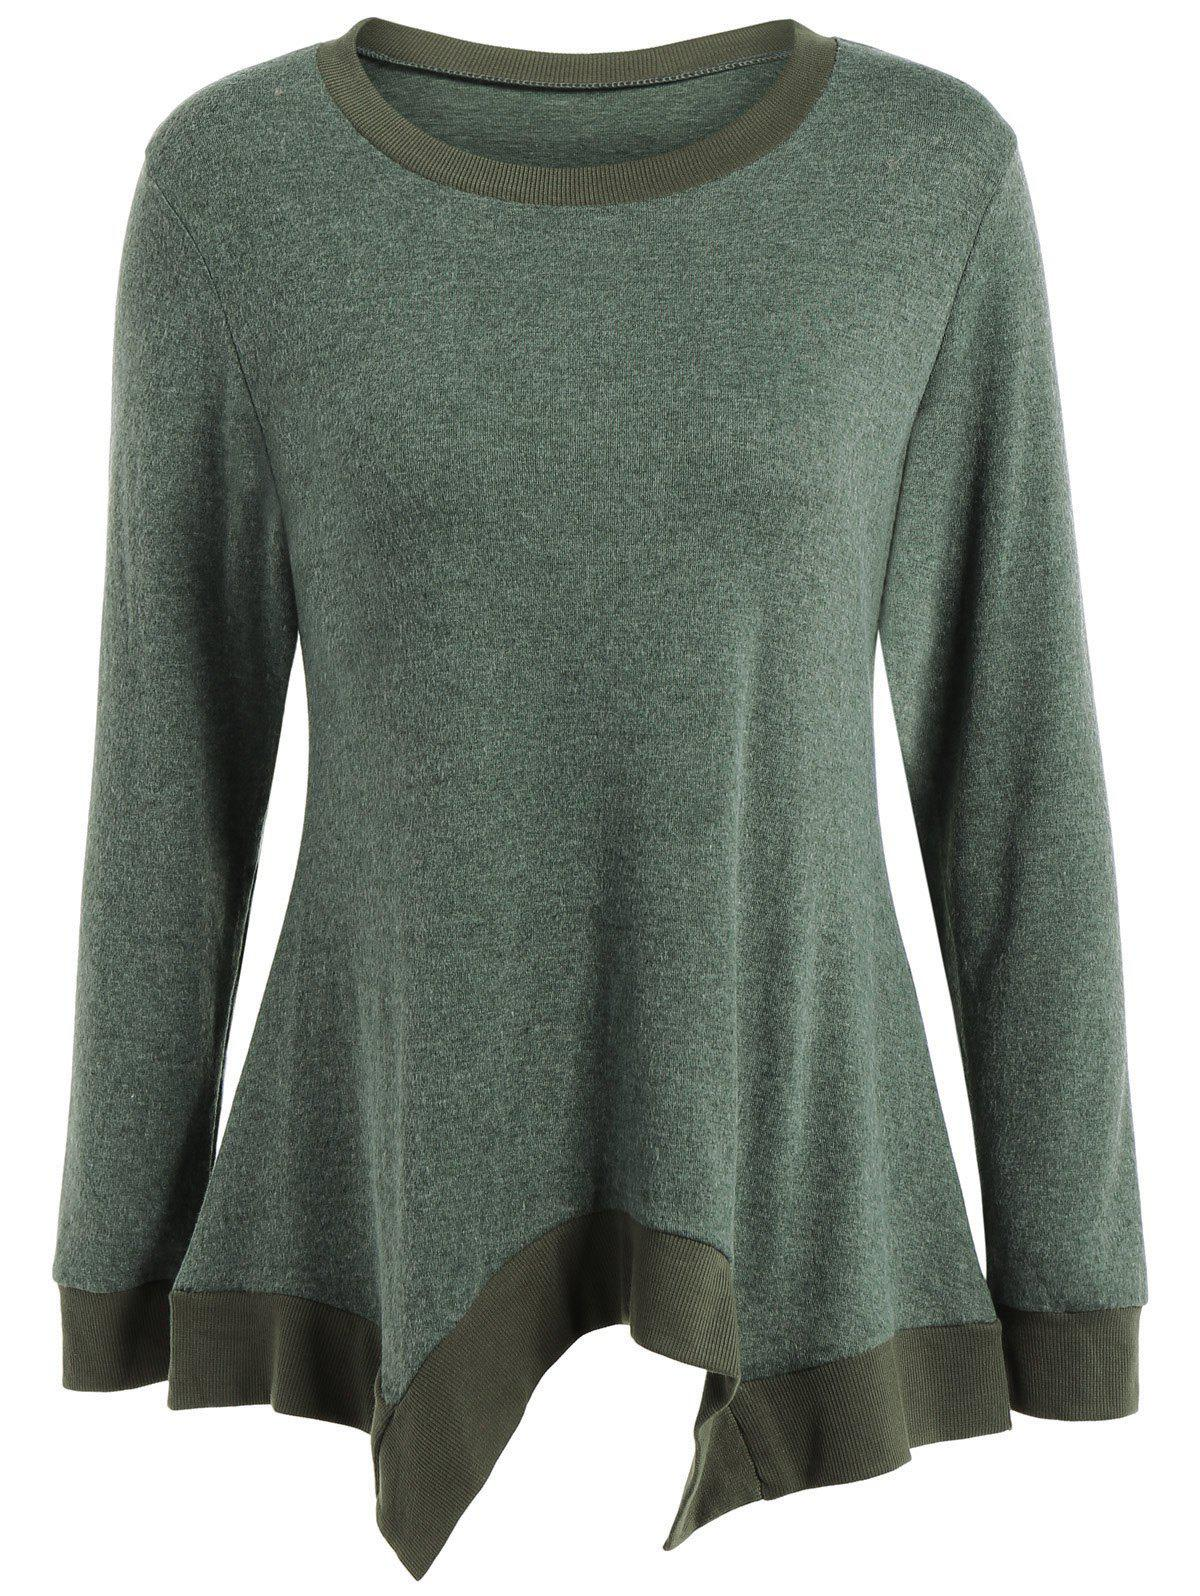 Online Autumn Covered Edge Asymmetric Pullover Knitwear